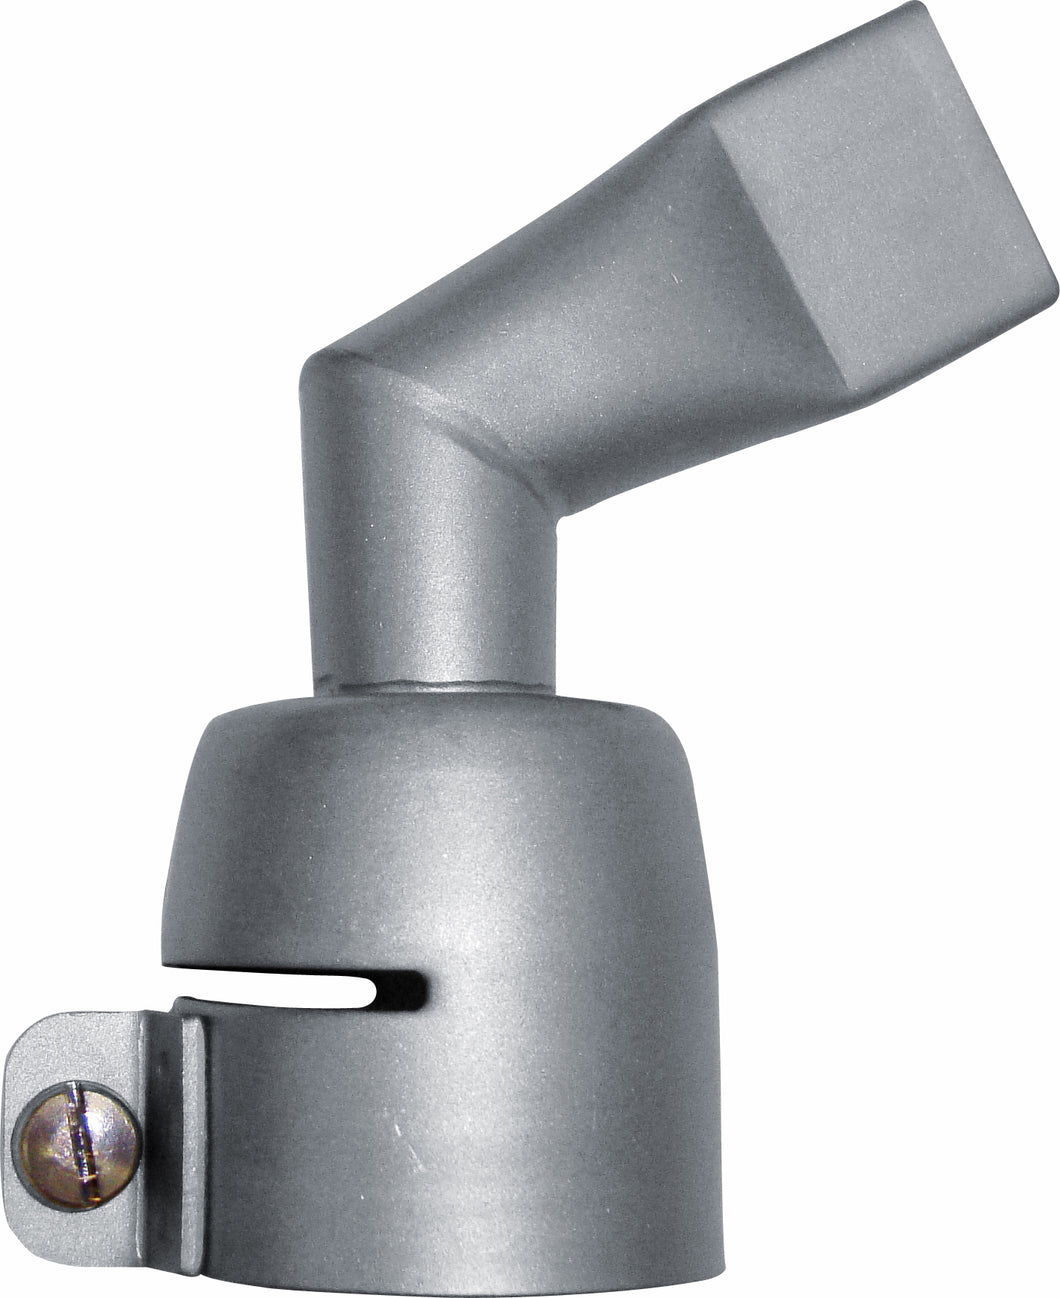 Angled wide slot nozzle 20mm 60°